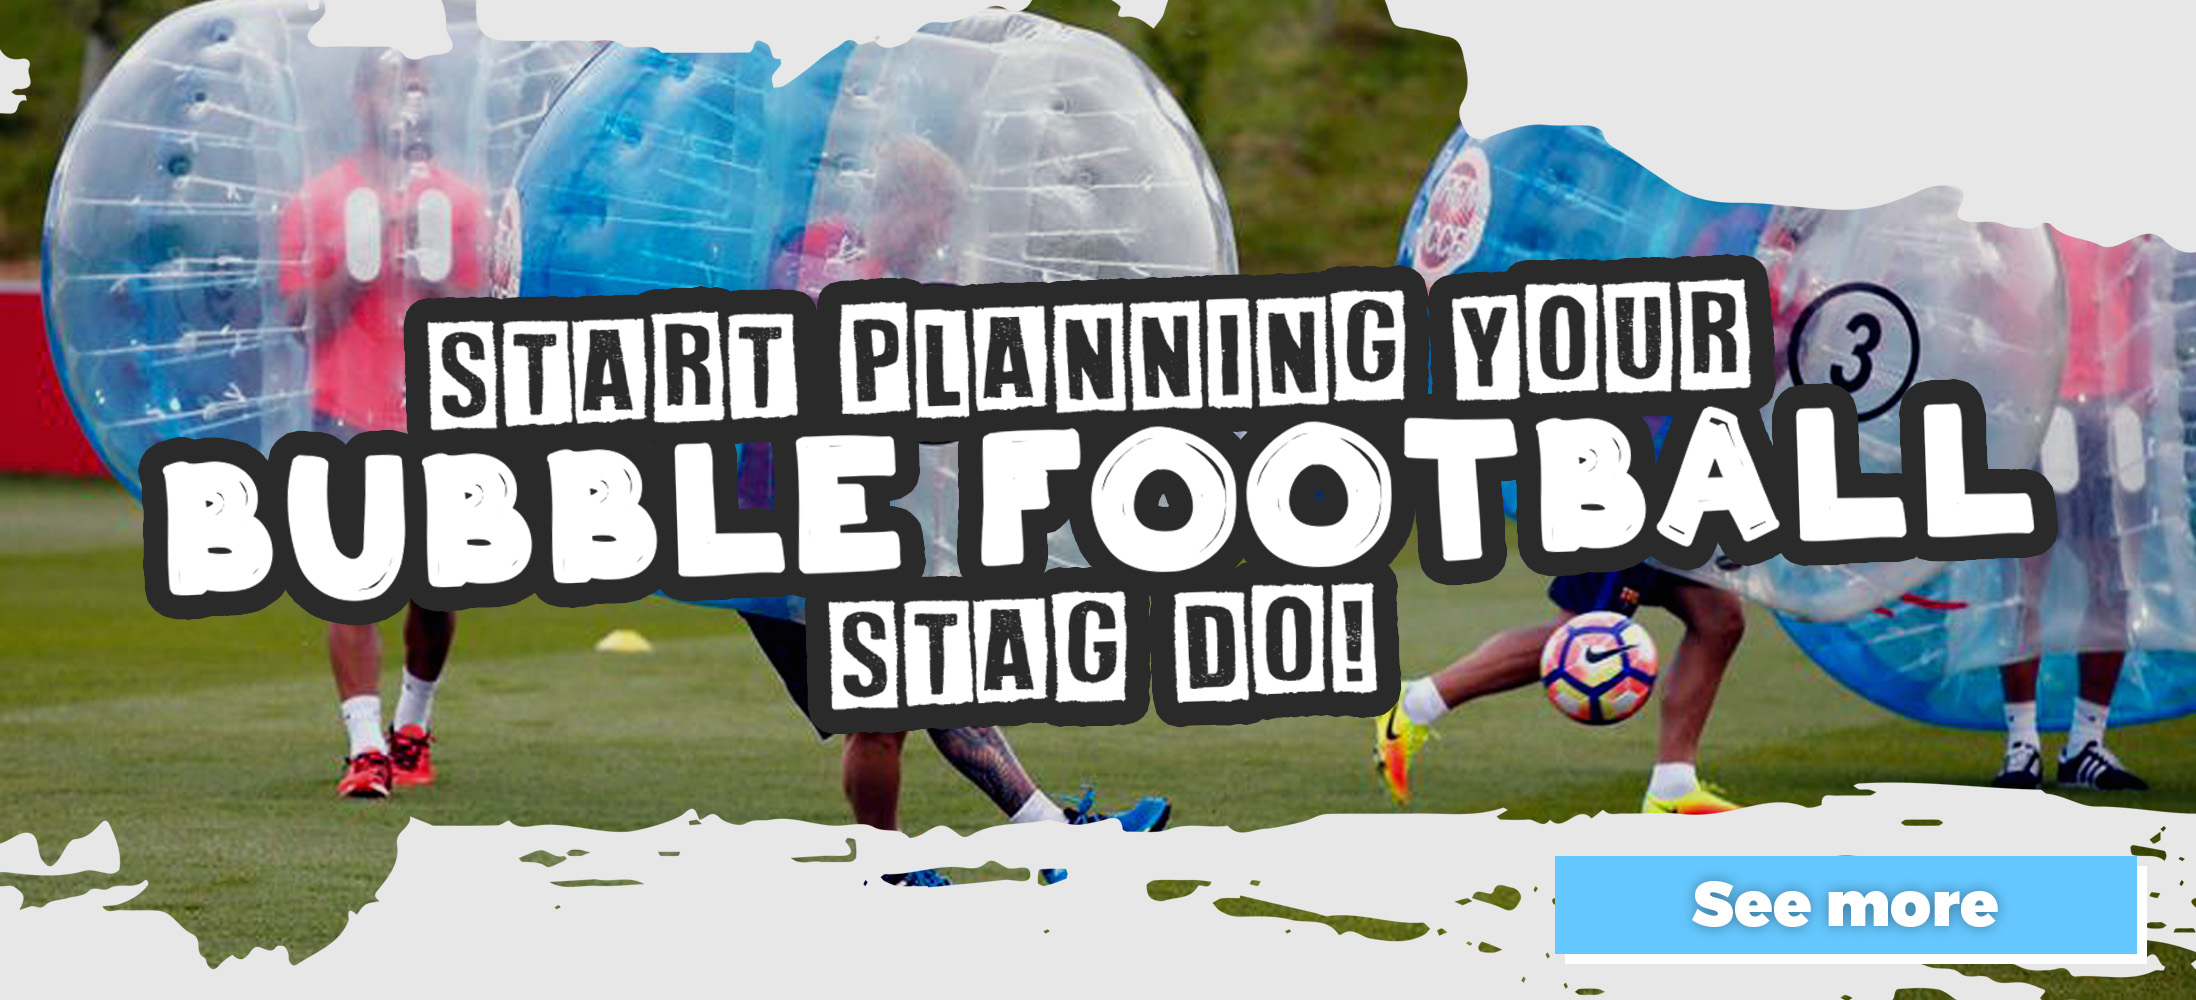 Book Your Stag Do Bubble Football here